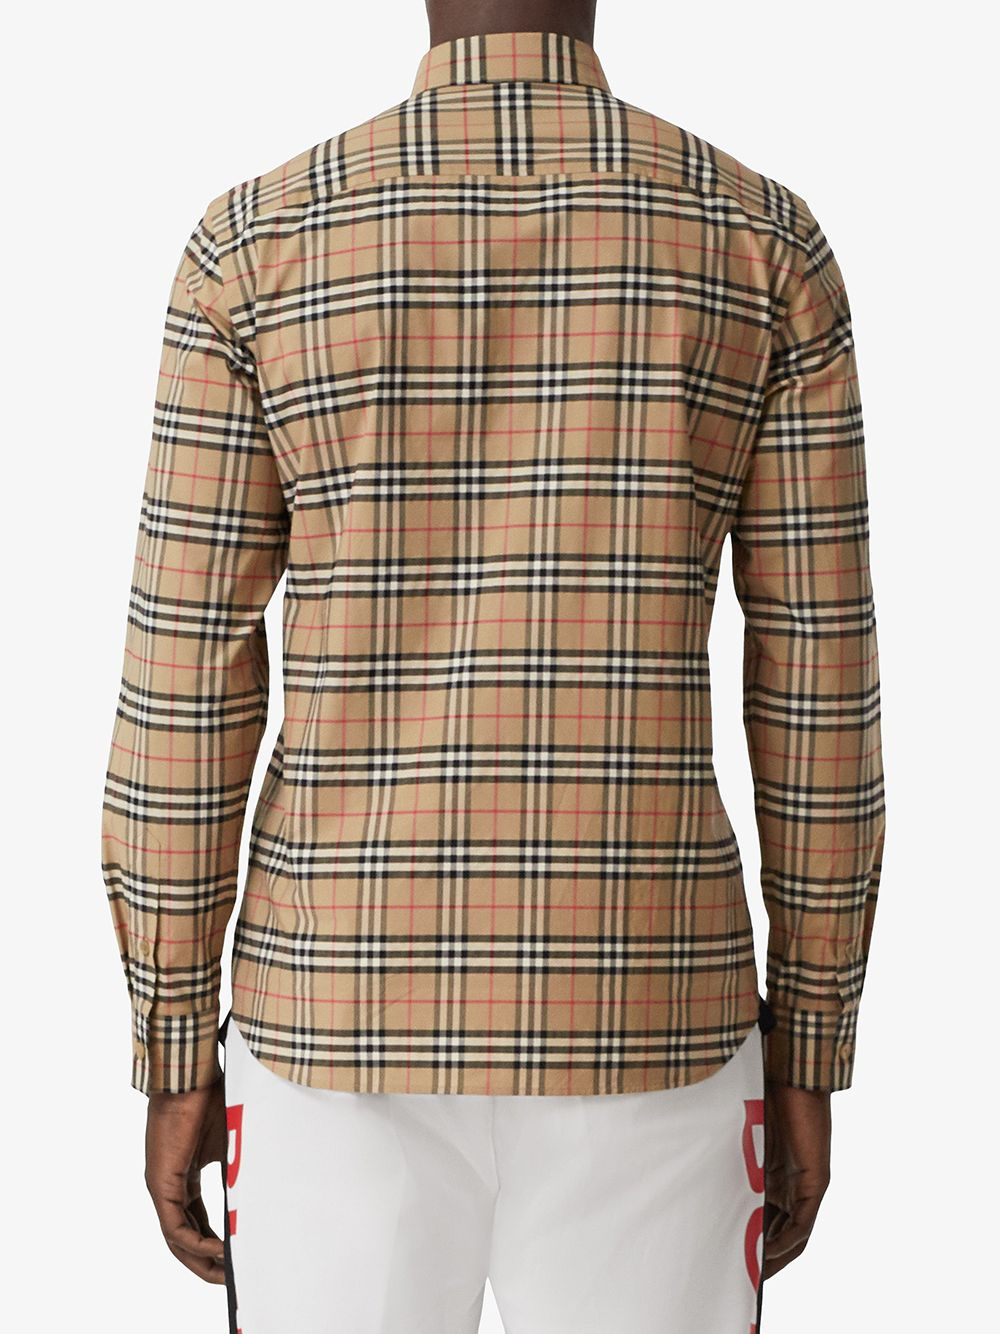 stretch cotton small scale Burberry Check print shirt featuring classic collar BURBERRY |  | 8020966-SIMPSONA7028